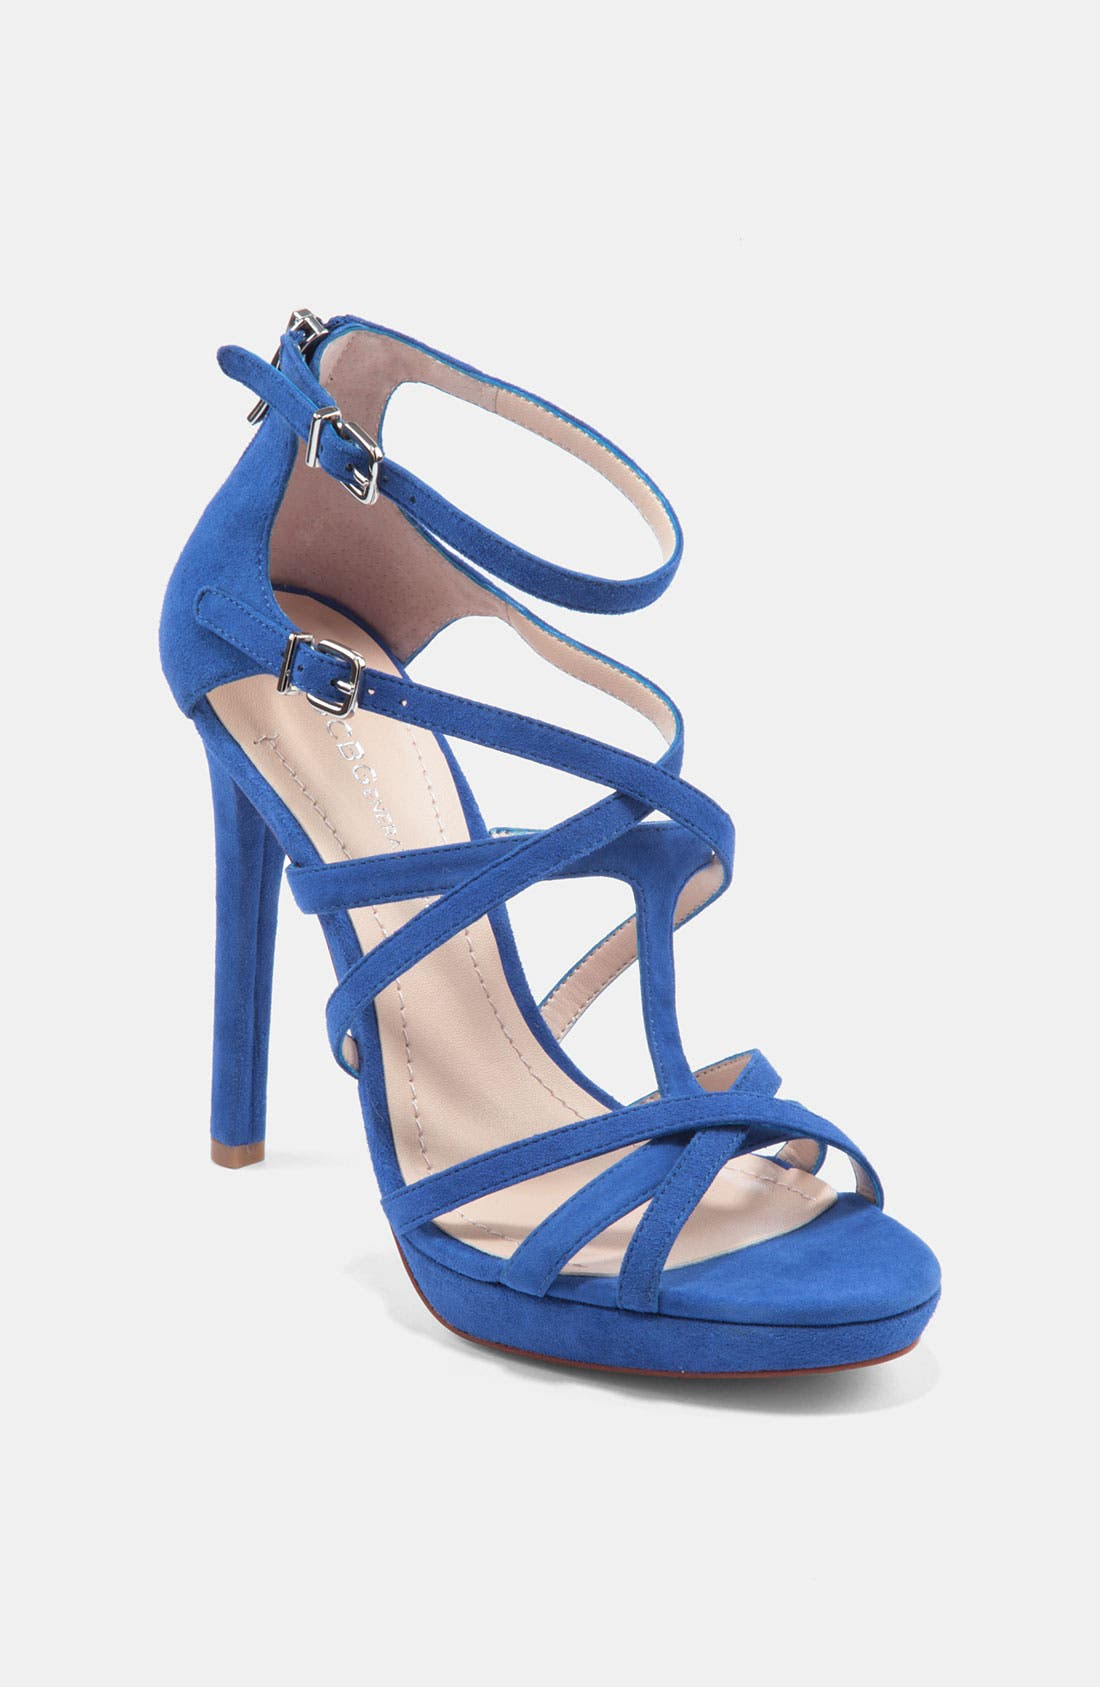 Alternate Image 1 Selected - BCBGeneration 'Montie' Sandal